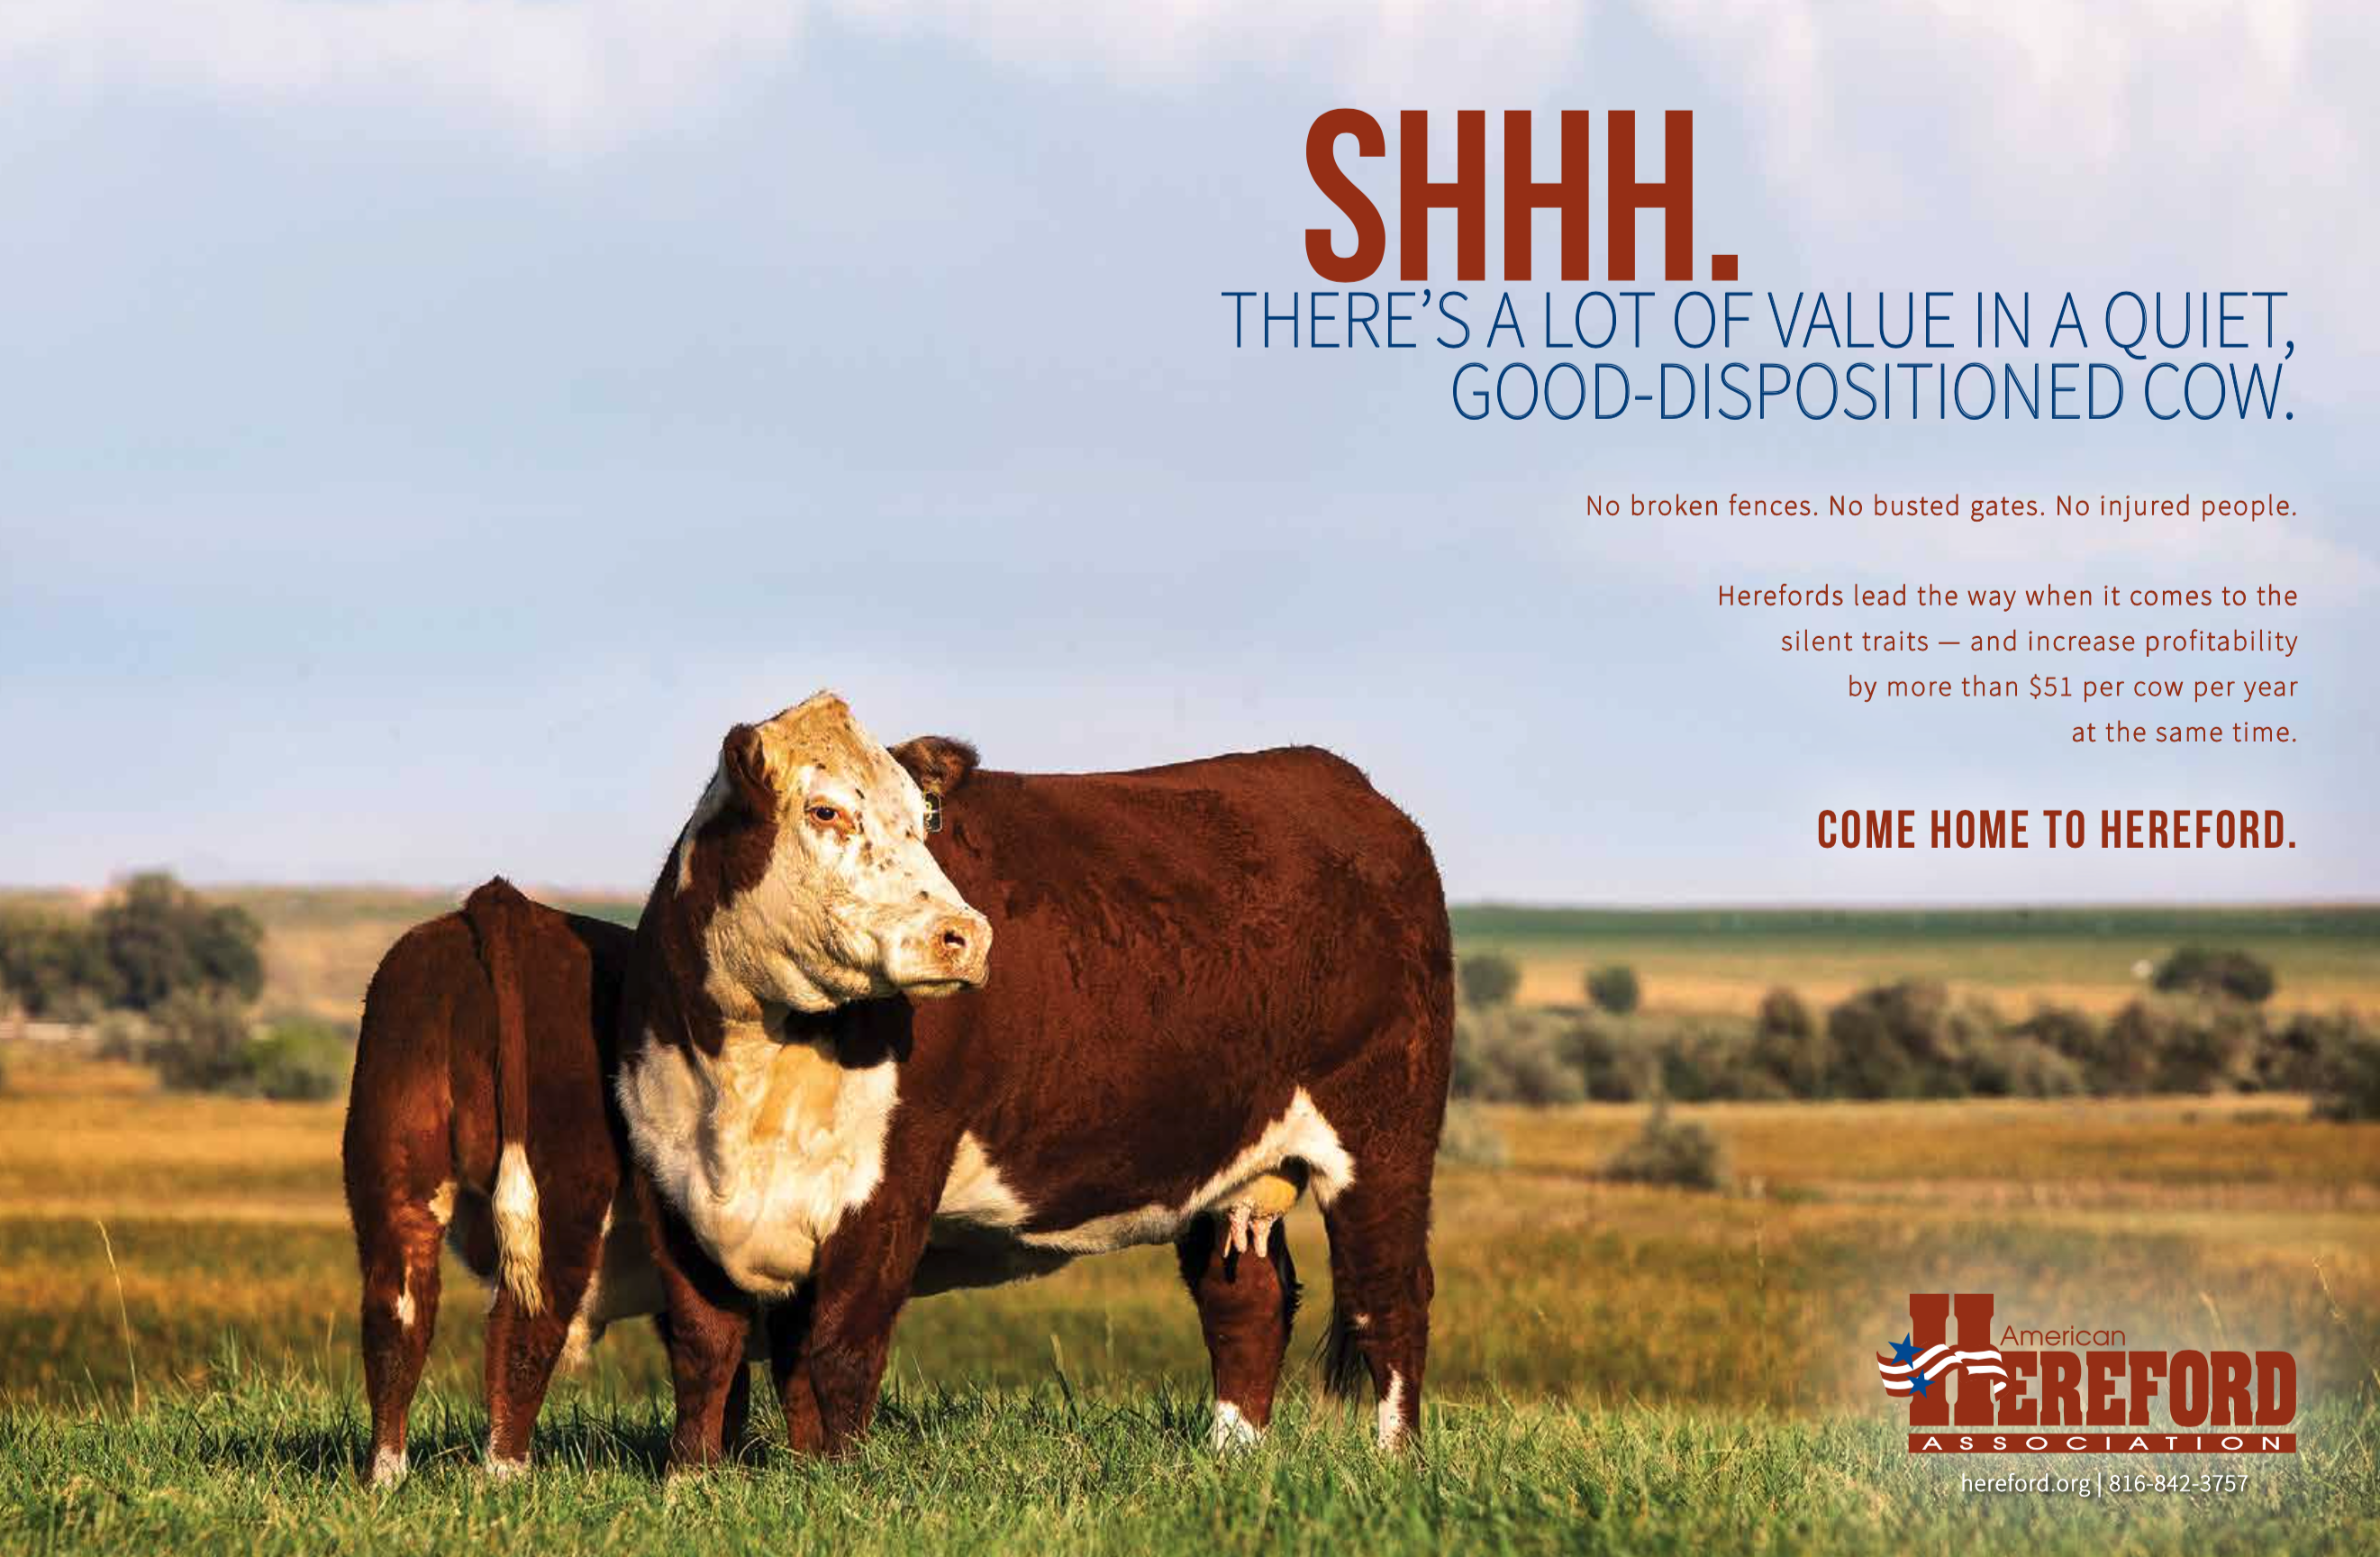 'Shhh' Full Page Insert — No Bleeds